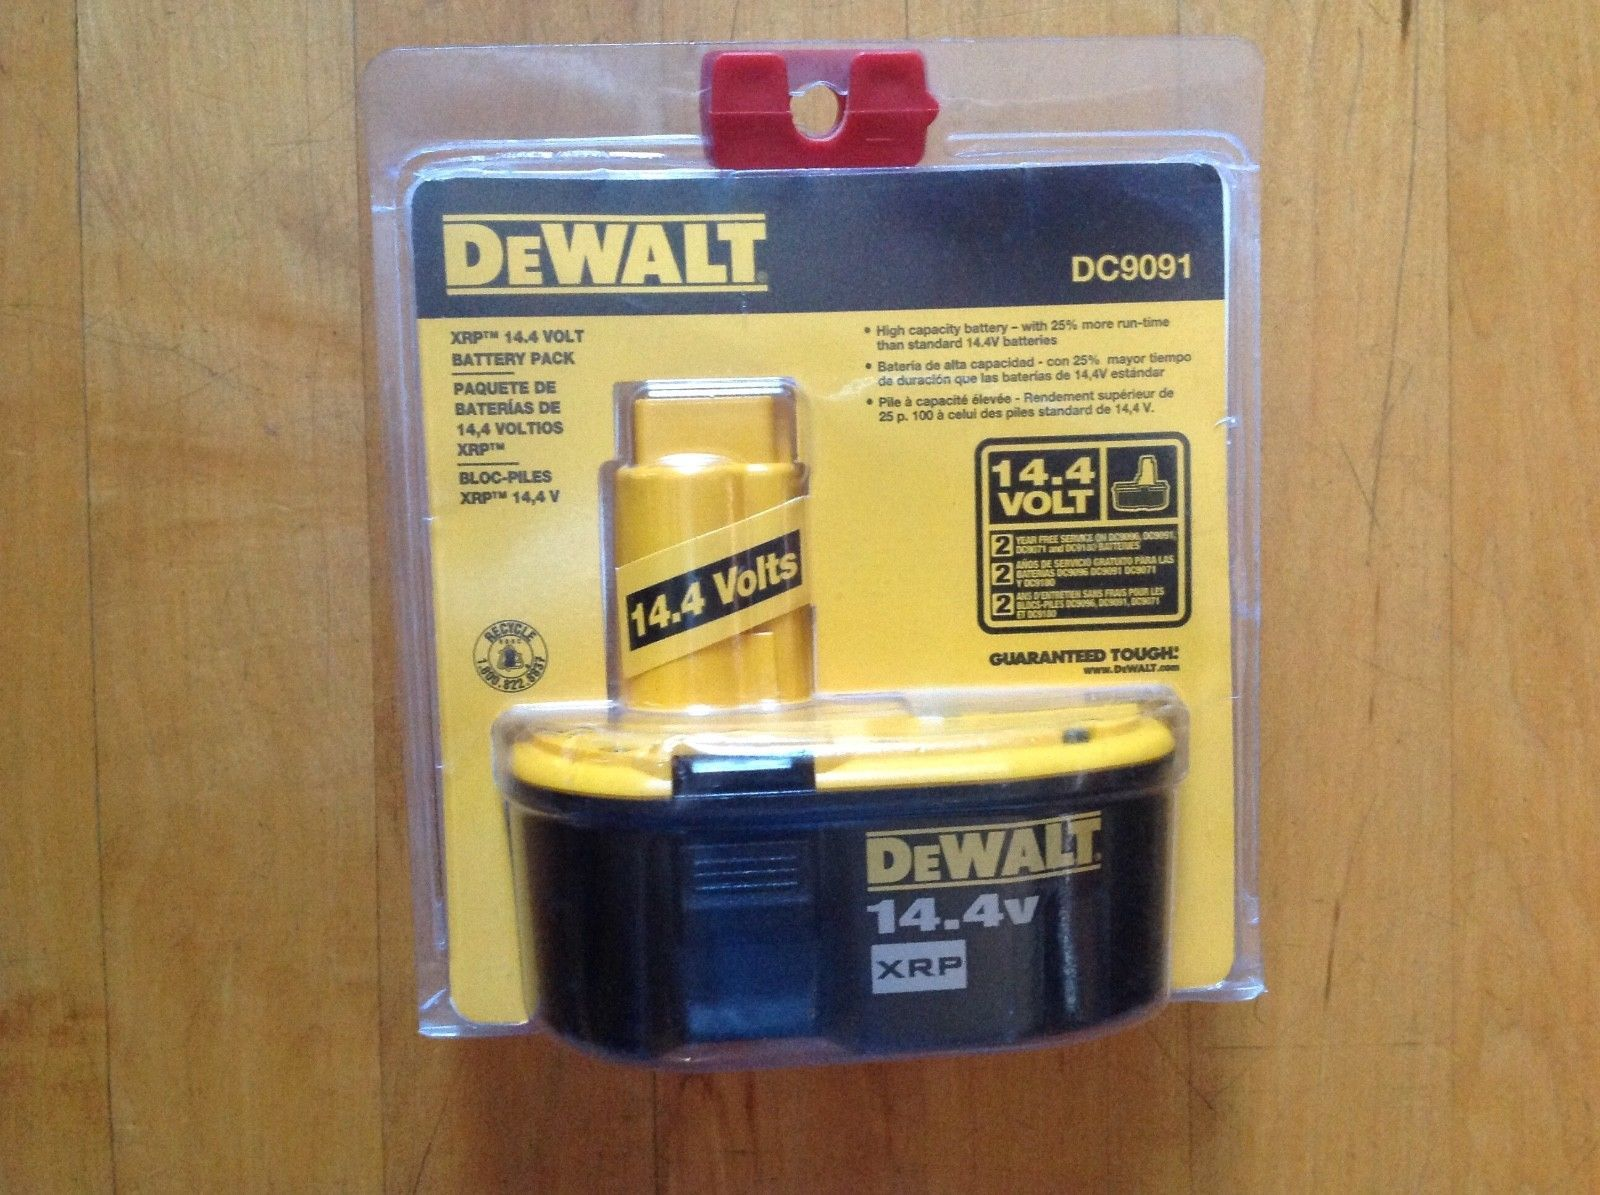 DeWALT DC9091 14.4V 2.4 Amp Hour XRP Cordless Tool Rechargeable Battery New image 5